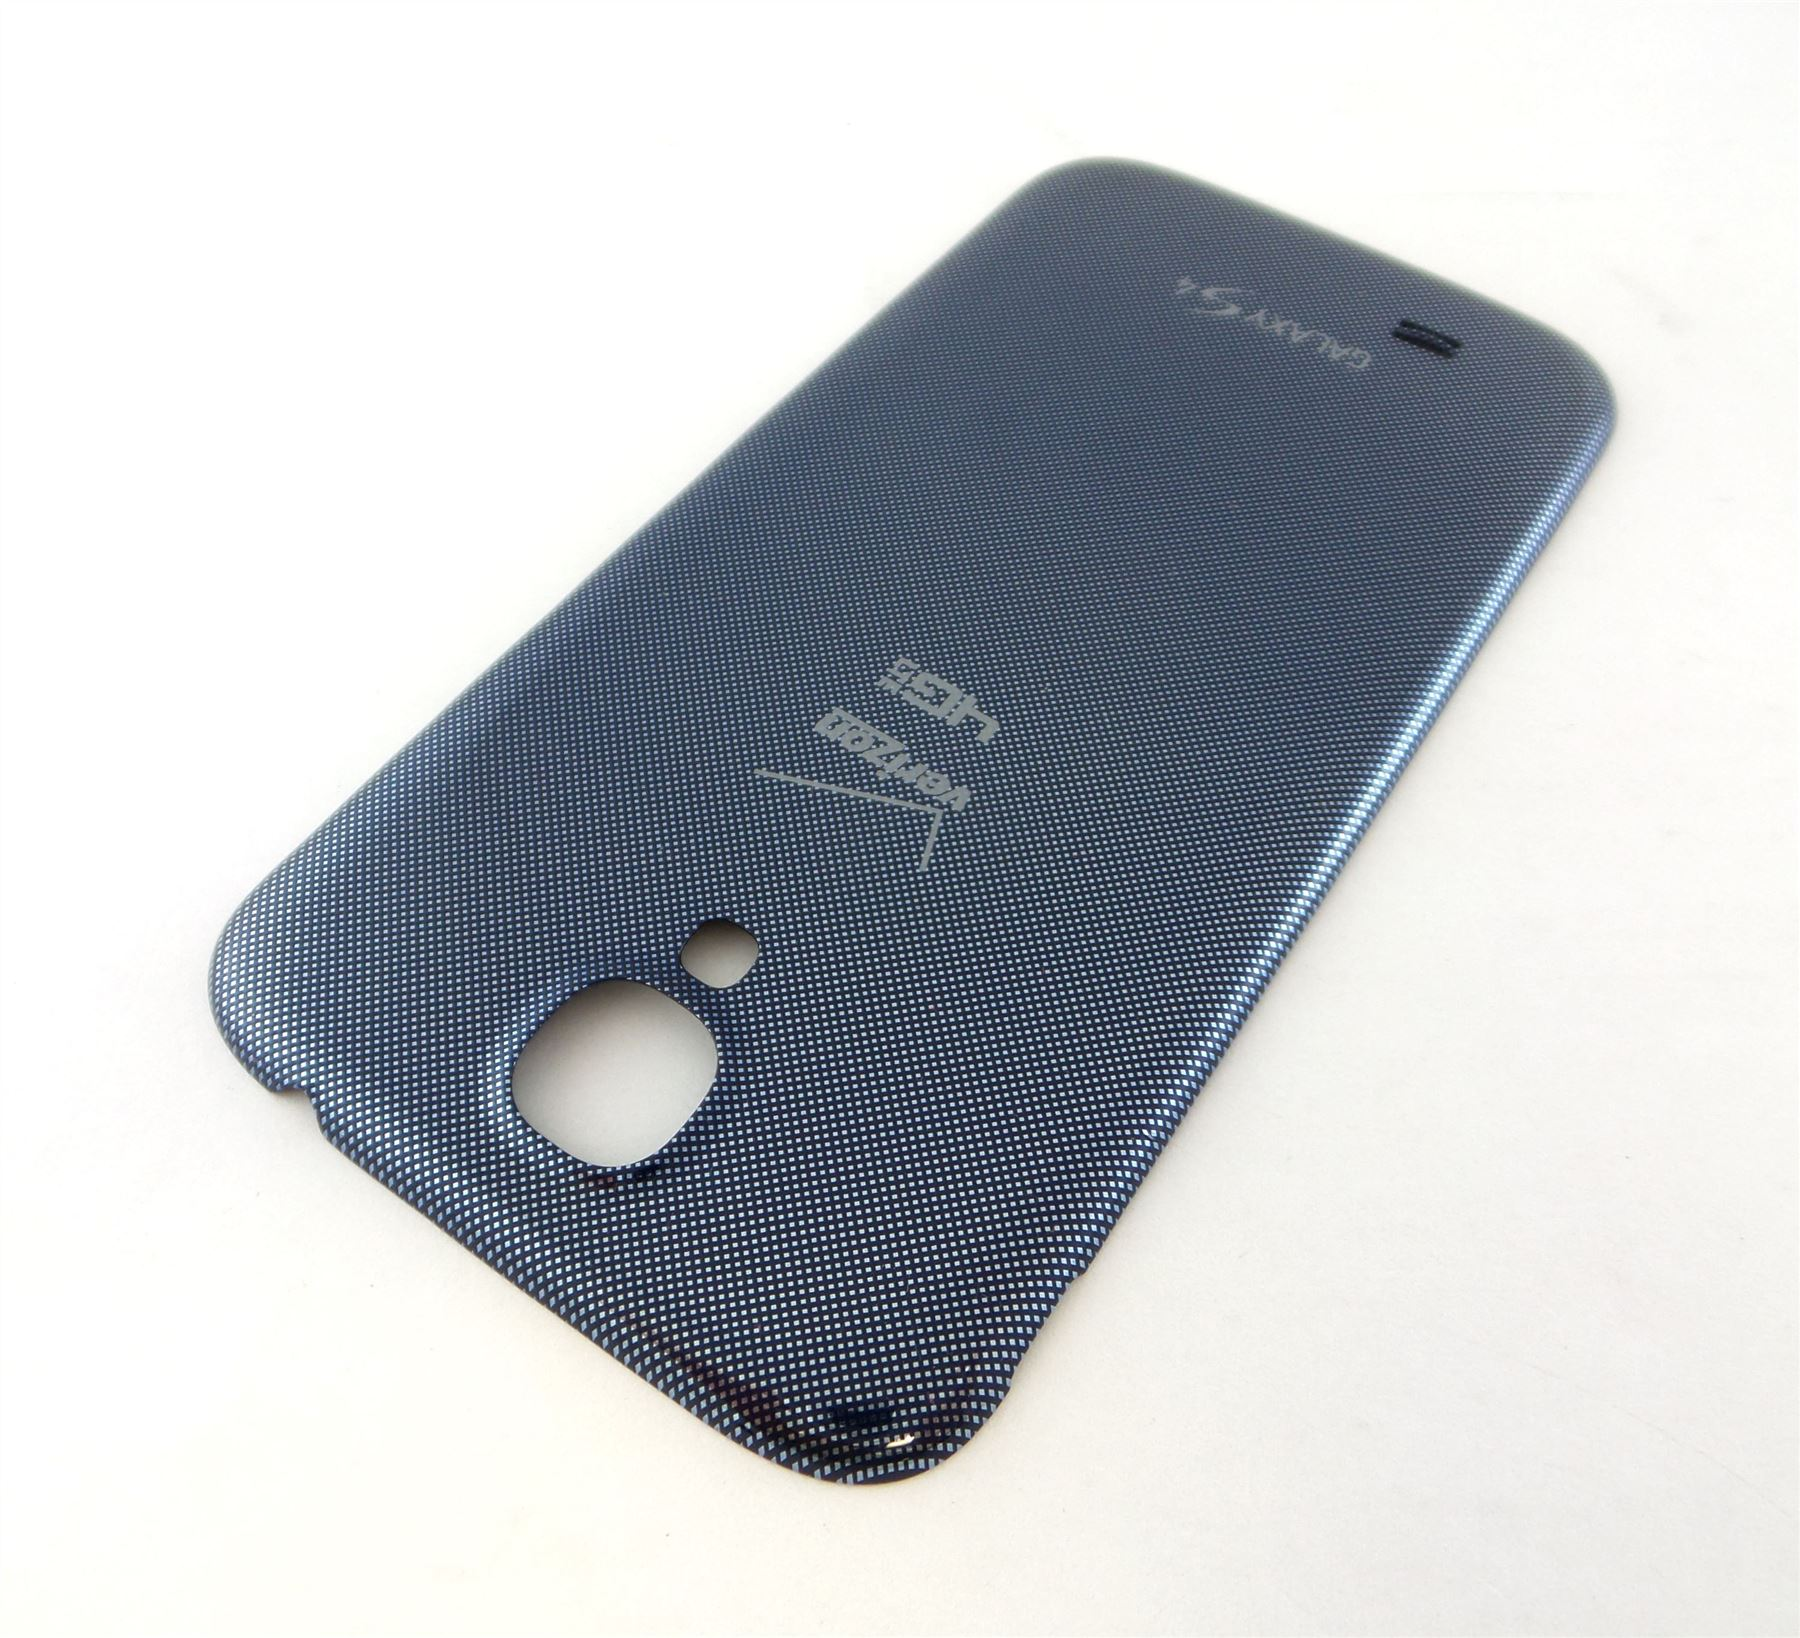 Samsung-Galaxy-S4-Authentic-Battery-Door-Cover-AT-amp-T-Verizon-T-Mobile thumbnail 54